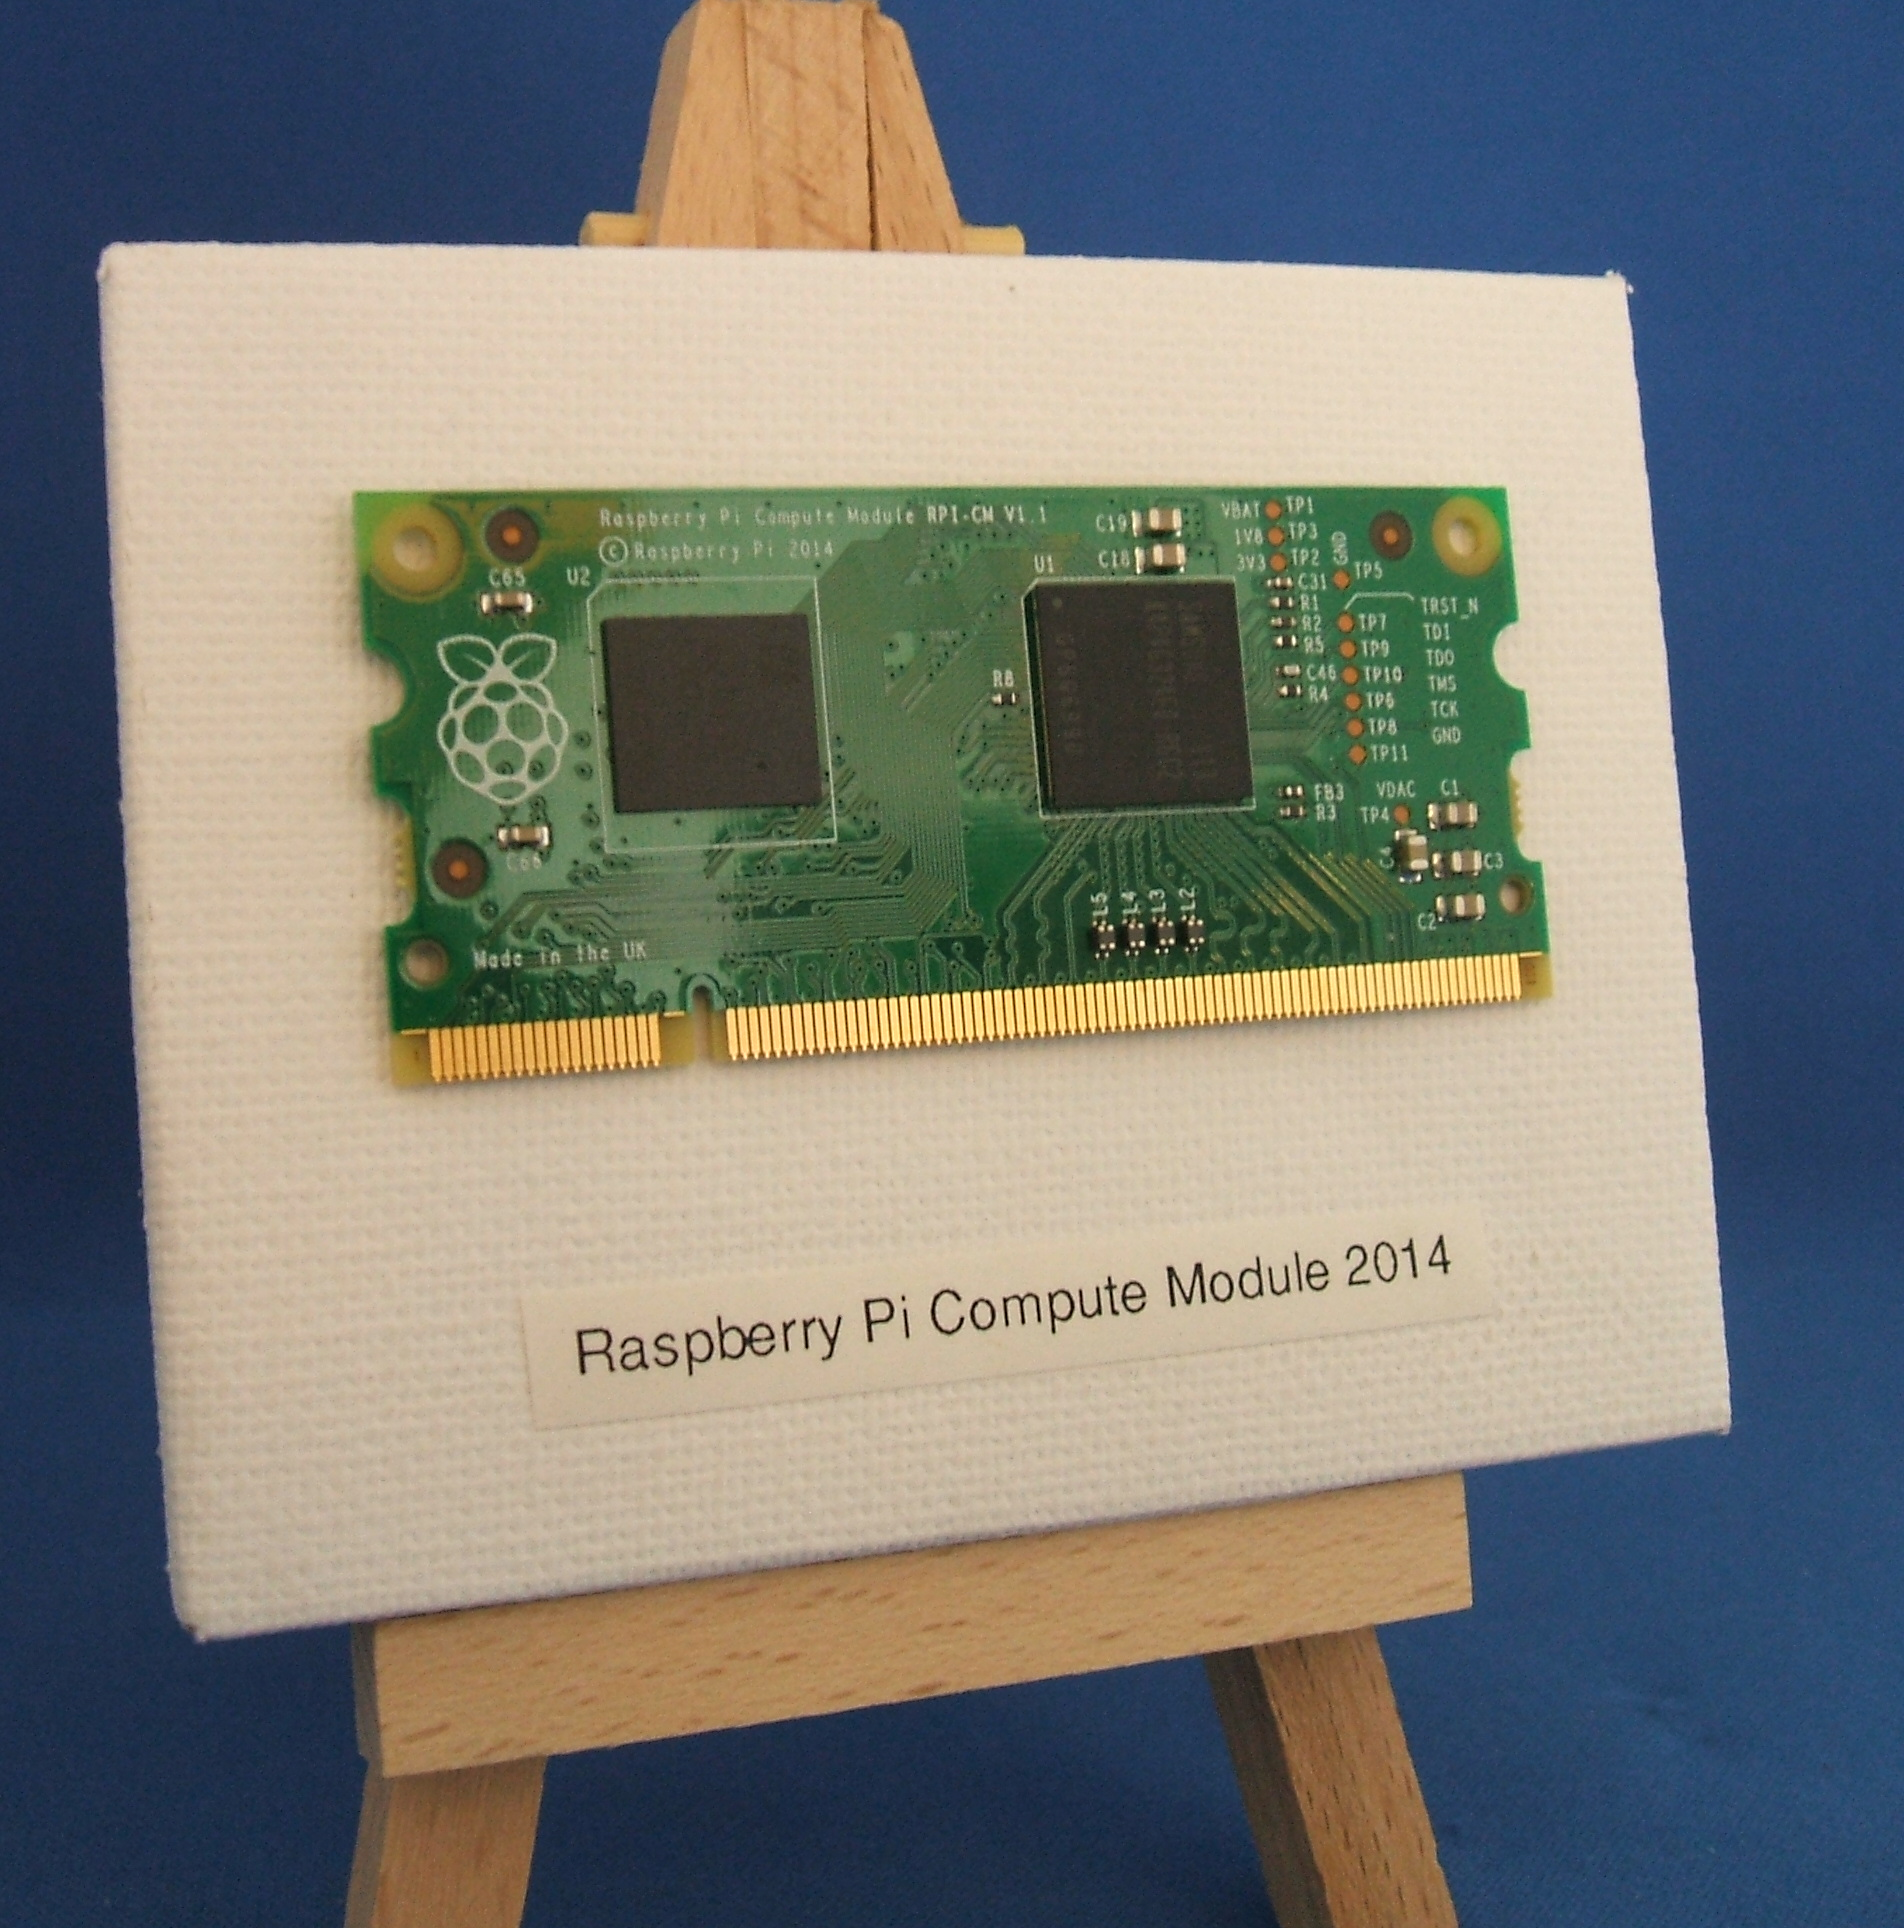 Pi Compute Module on an Easel, titled